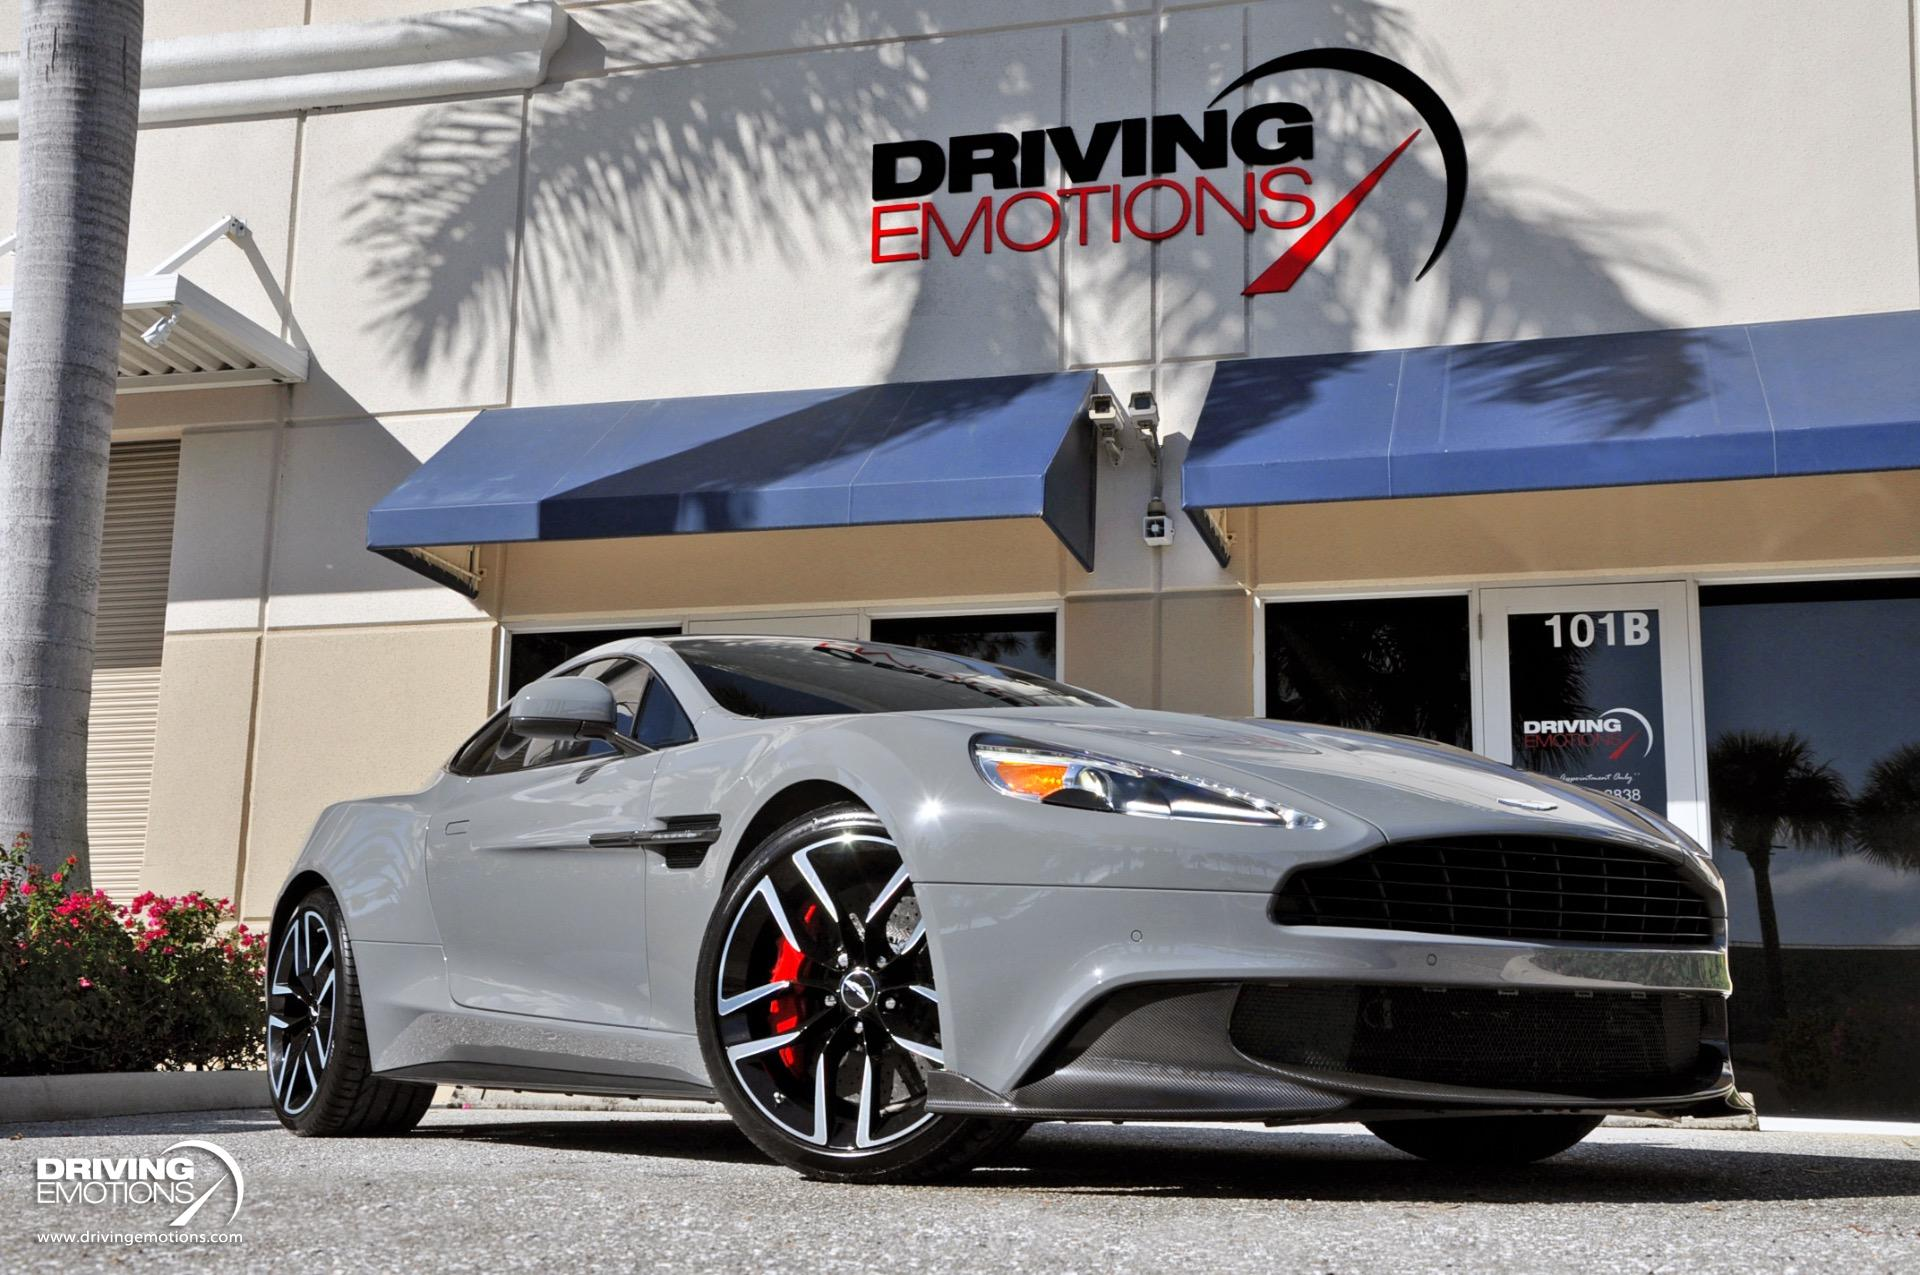 Used 2018 Aston Martin Vanquish S S Coupe $330K MSRP! | Lake Park, FL